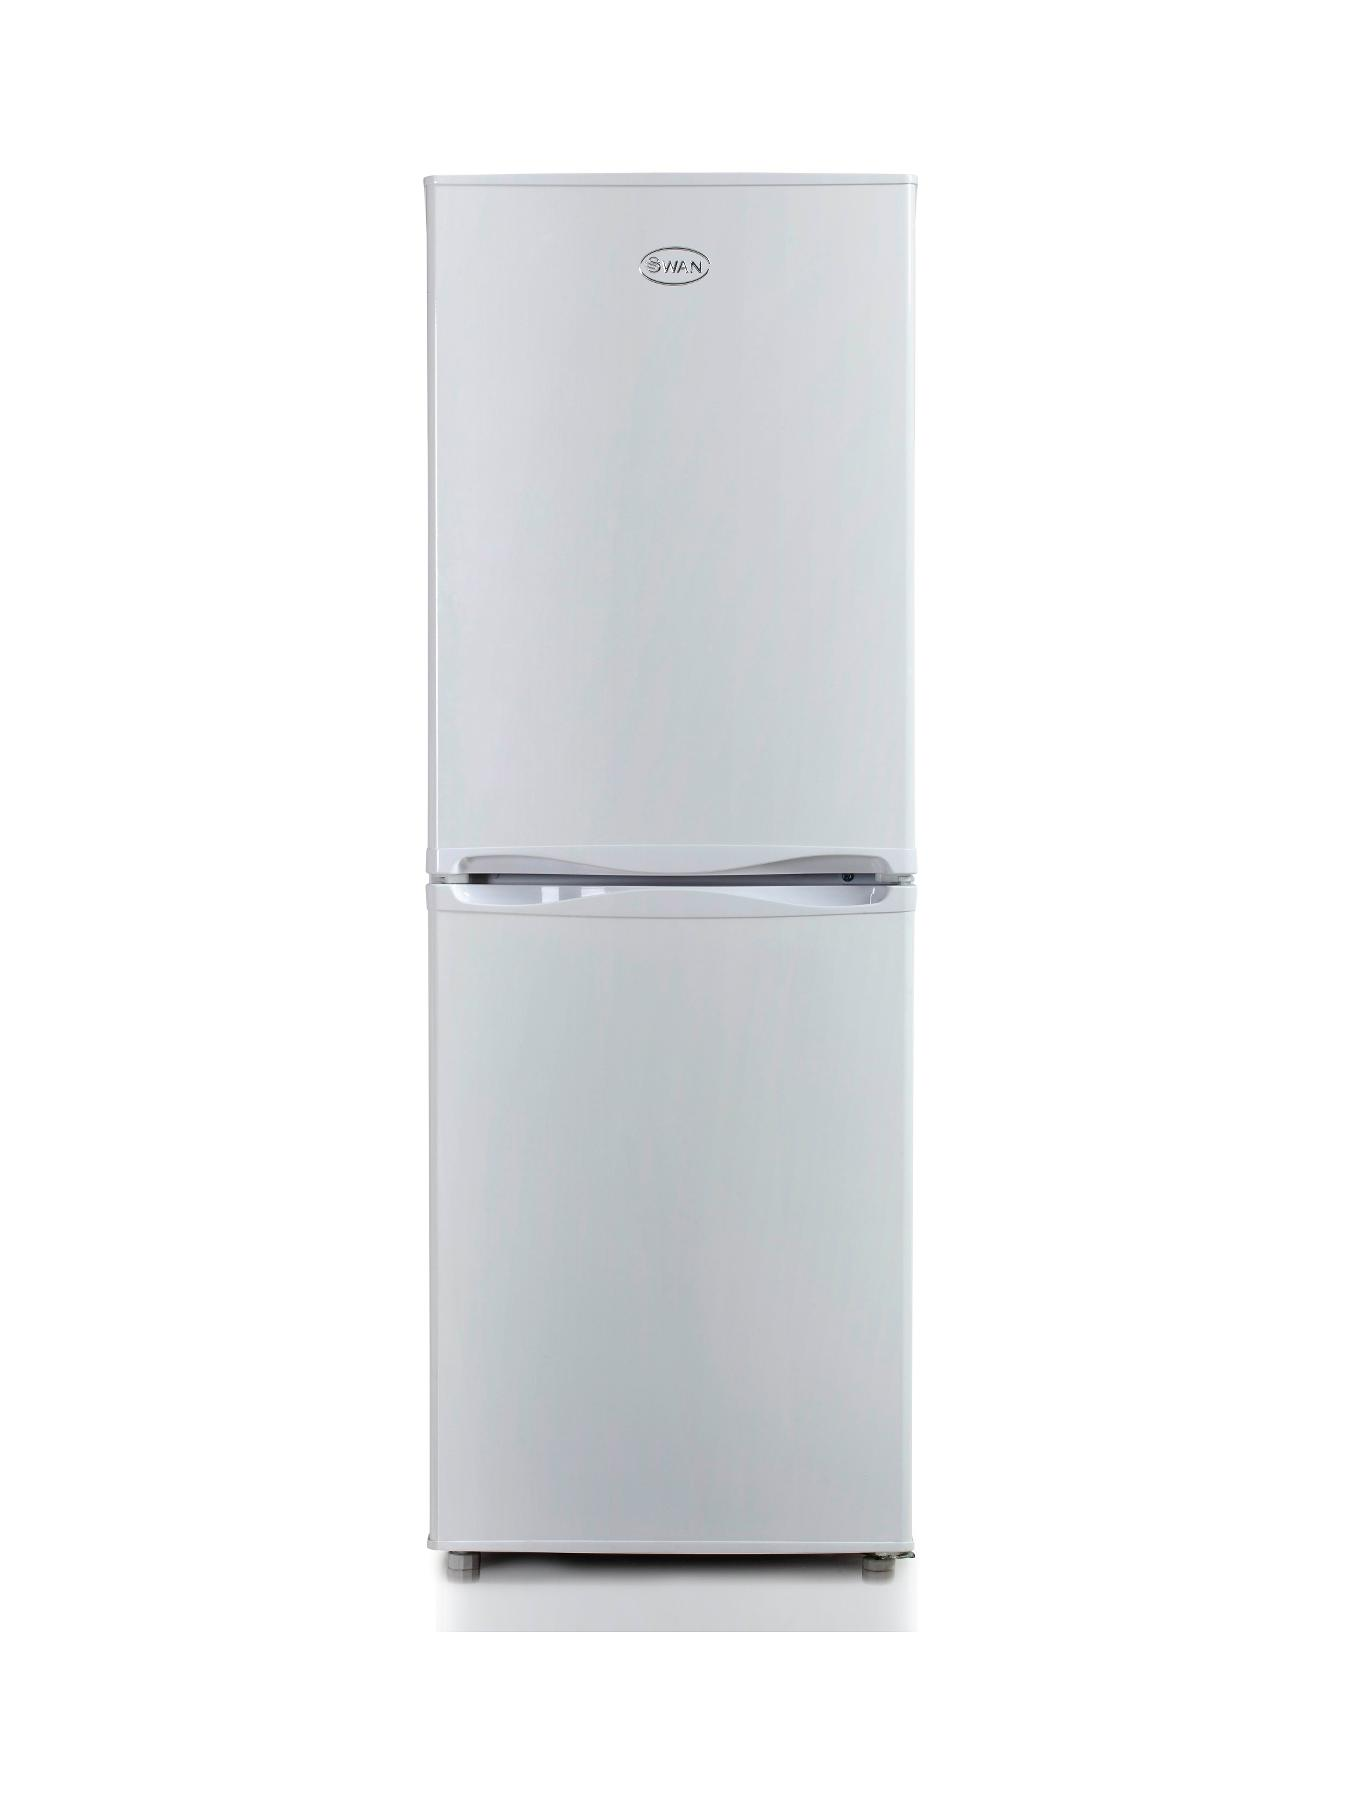 SR5290W 50cm Fridge Freezer - White